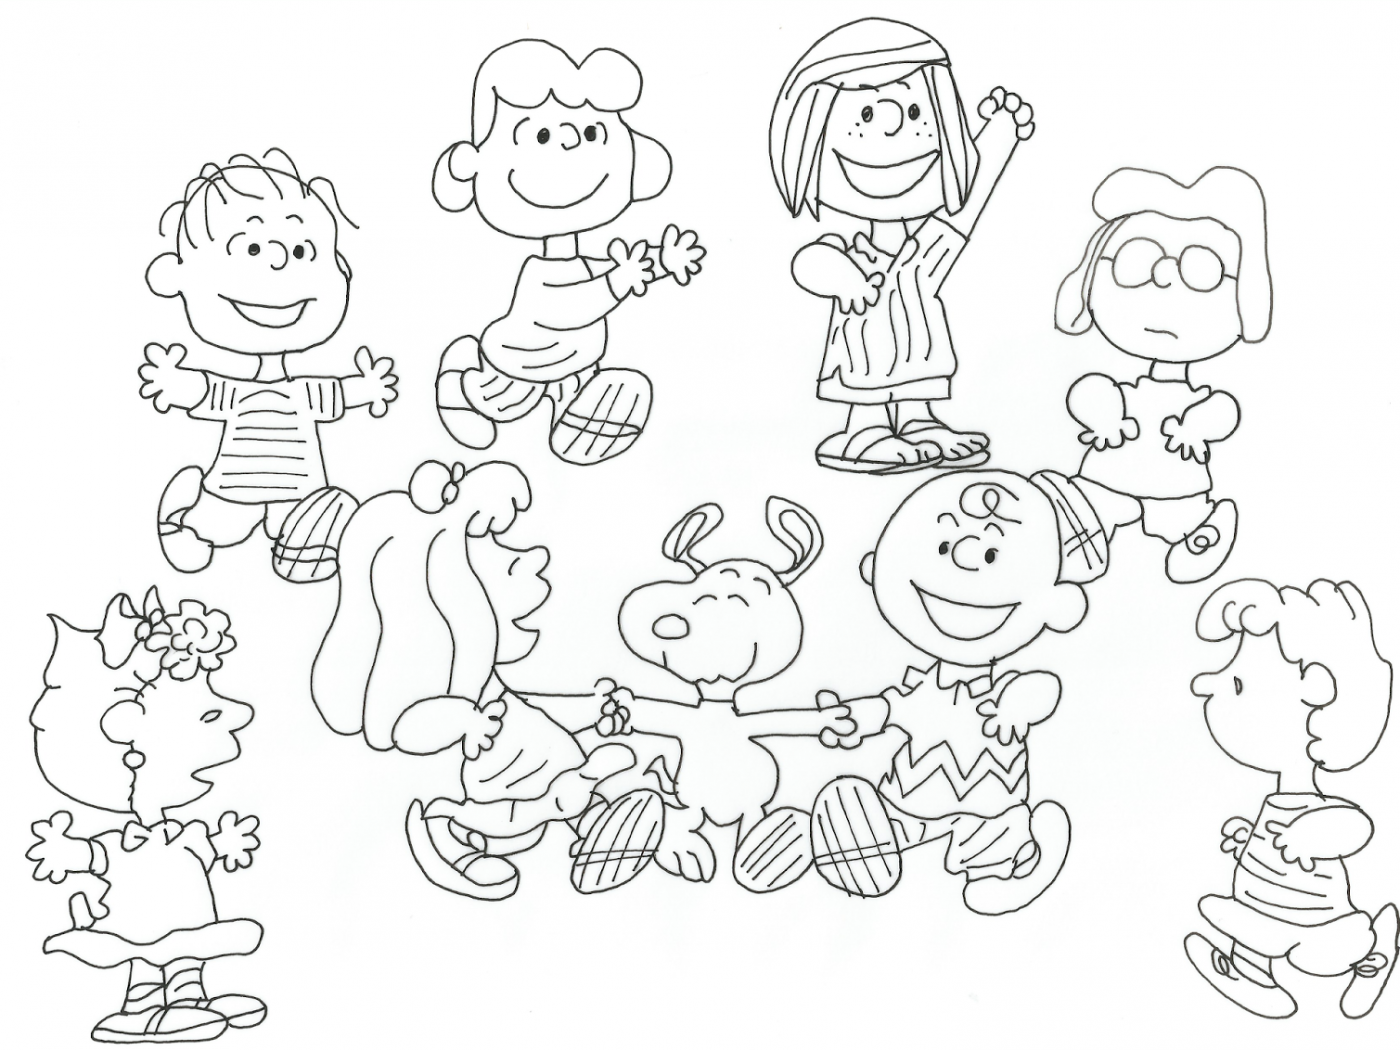 1400x1050 Charlie Brown Coloring Pages Friends Peanuts Clever Christmas Free